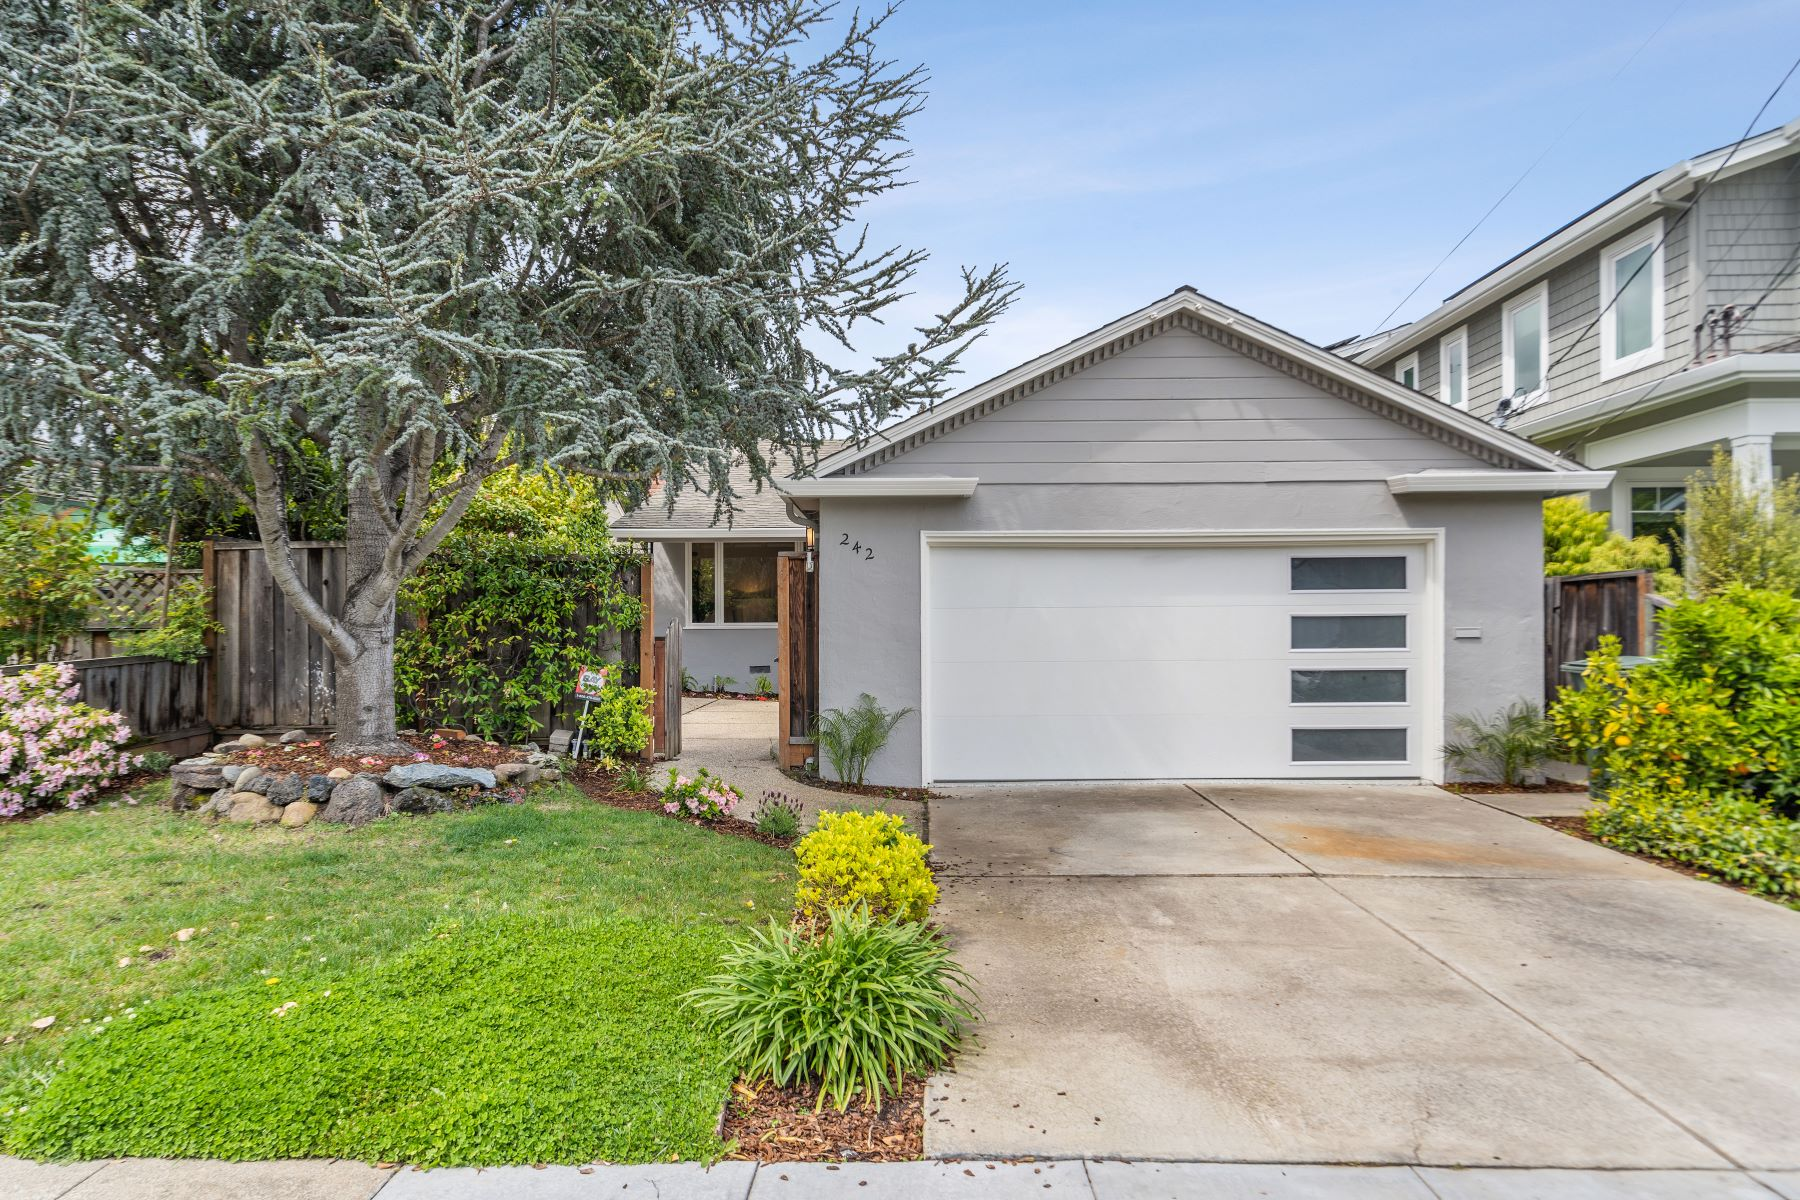 Single Family Homes for Sale at Magnificently Remodeled Home in White Oaks 242 Park Avenue San Carlos, California 94070 United States